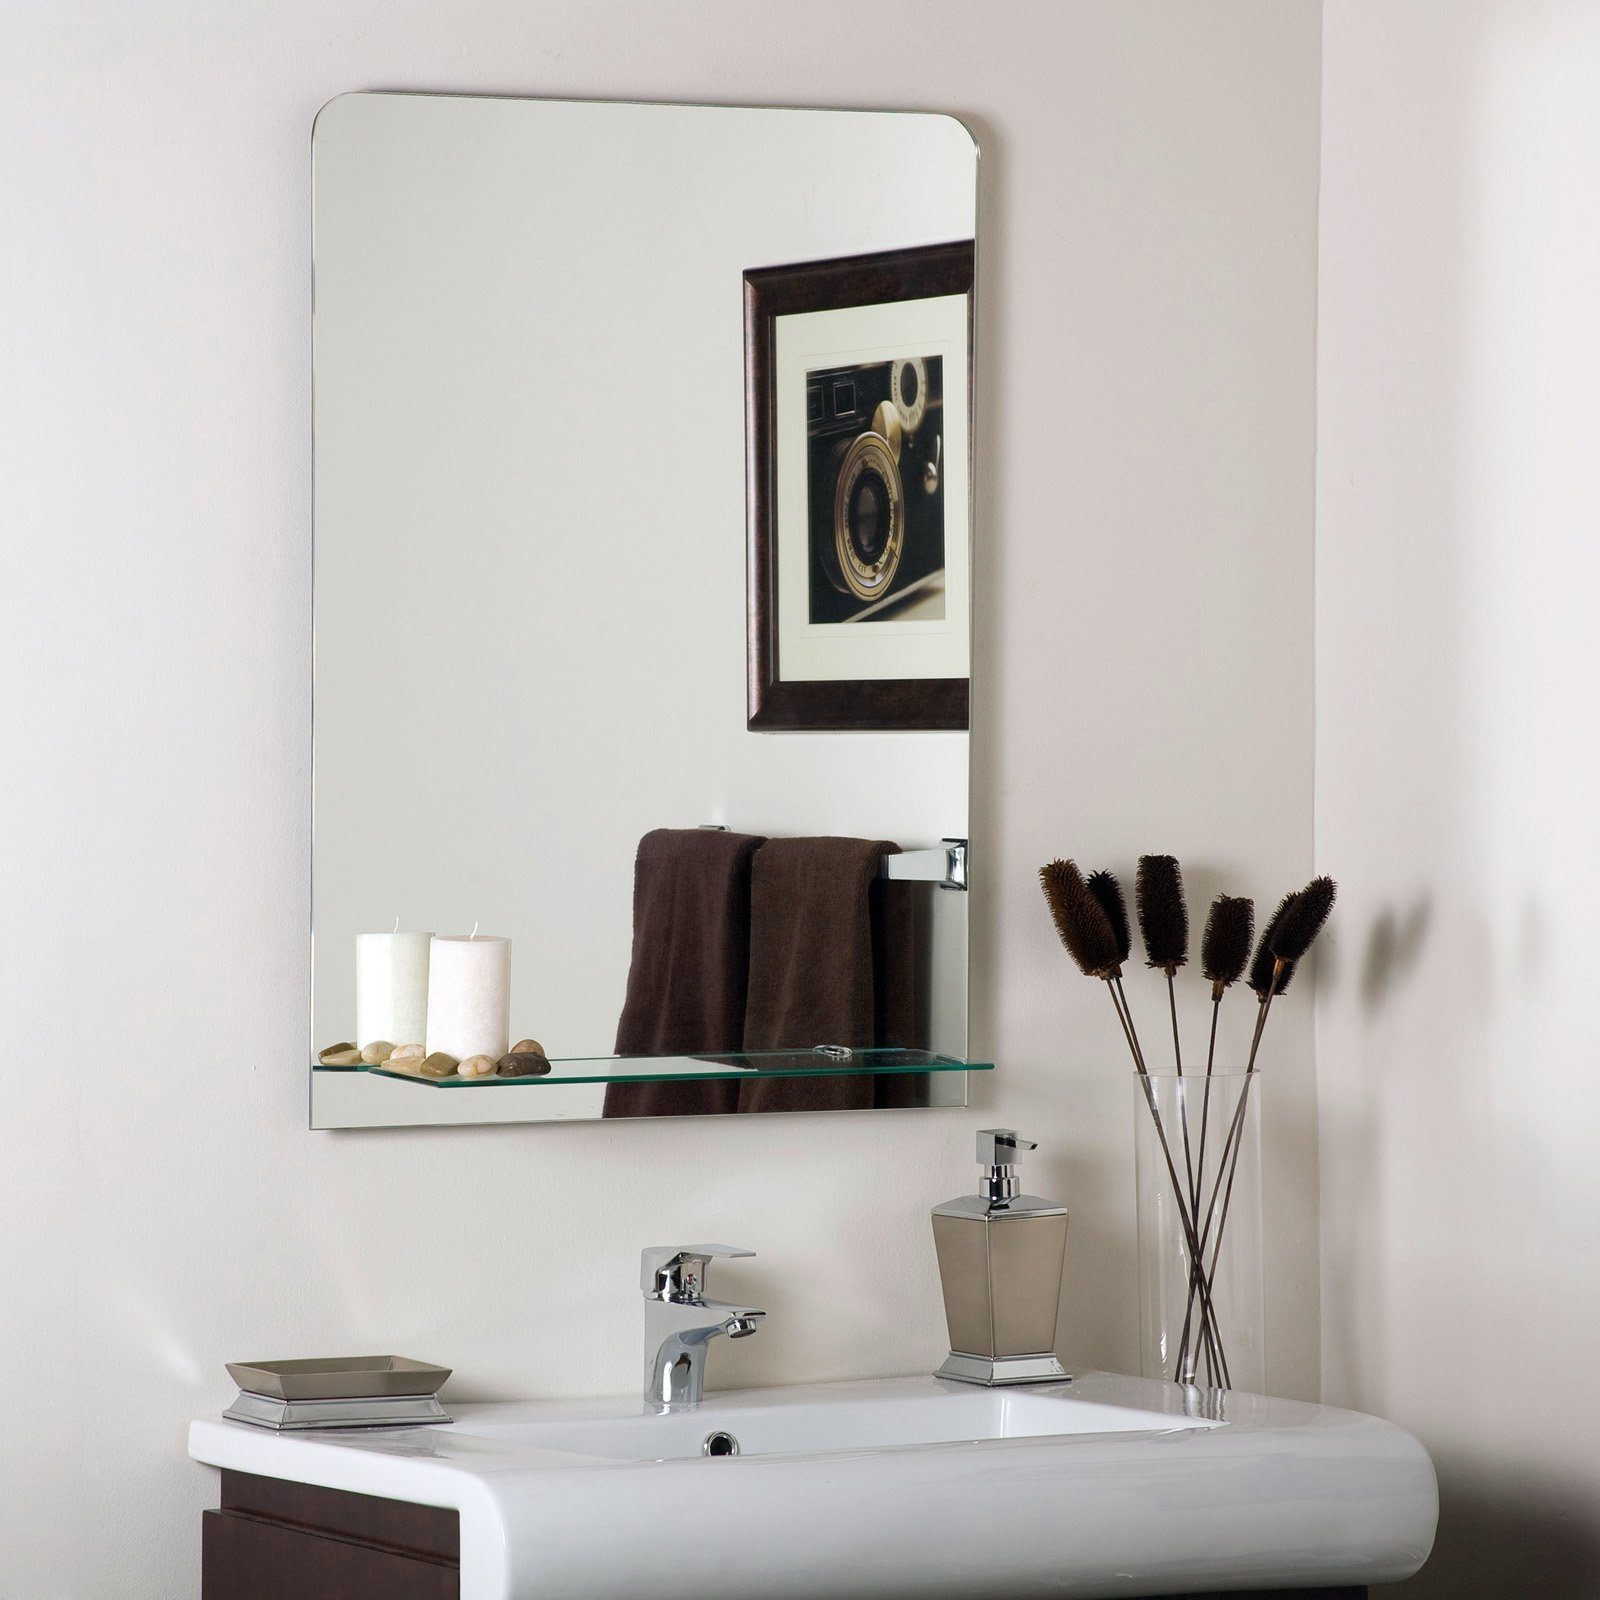 Décor Wonderland Columbus Frameless Wall Mirror 23.6W x 31.5H in. by Decor Wonderland of US